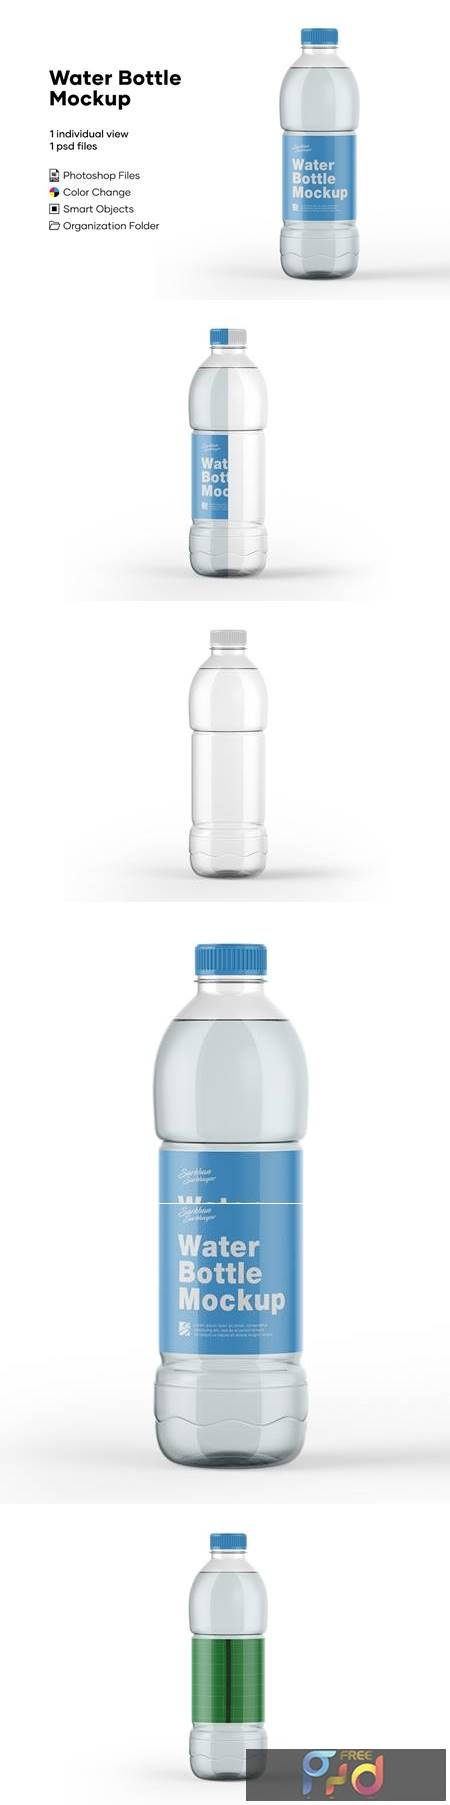 Water Bottle Mockup 5276723 1